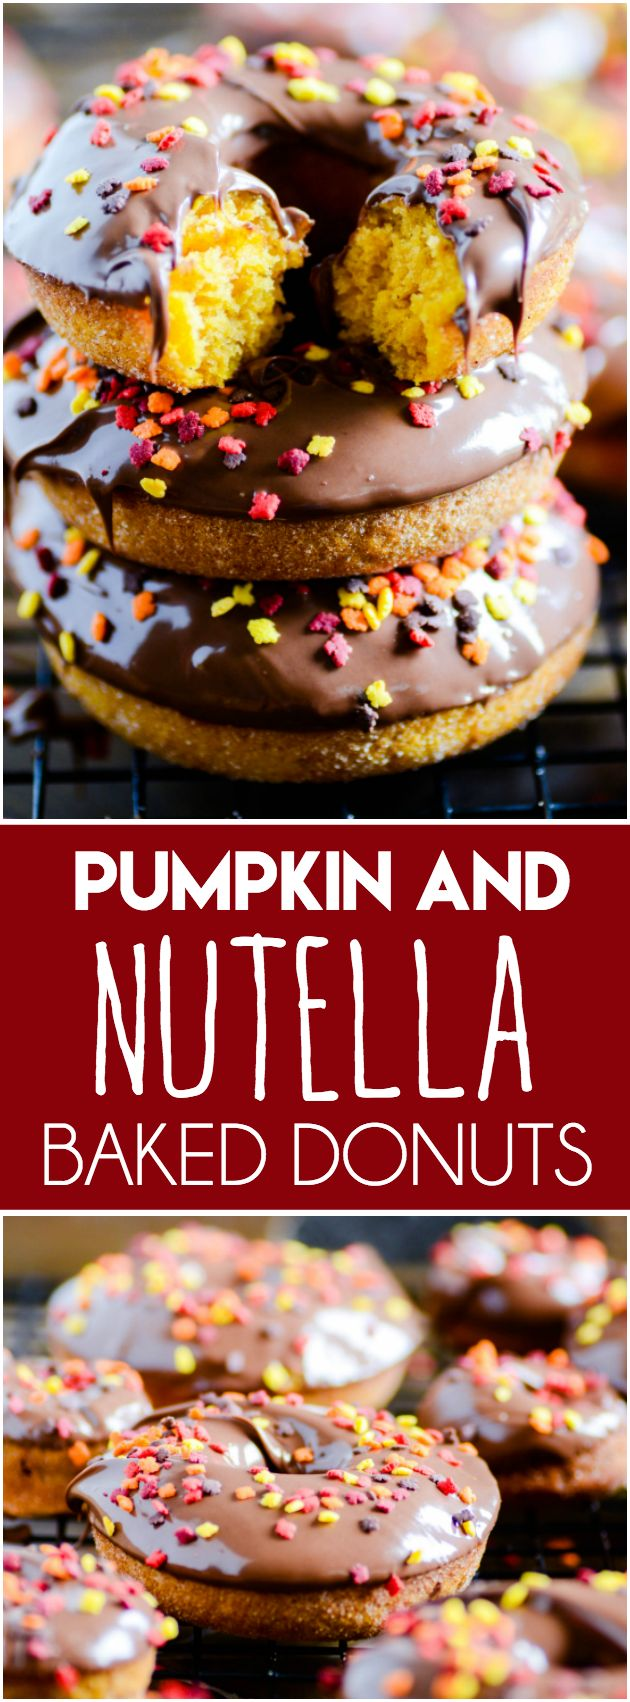 Baked Pumpkin Nutella Donuts http://www.somethingswanky.com/pumpkin-nutella-donuts-the-yeasty-kind/?utm_campaign=coschedule&utm_source=pinterest&utm_medium=Something%20Swanky&utm_content=Baked%20Pumpkin%20Nutella%20Donuts